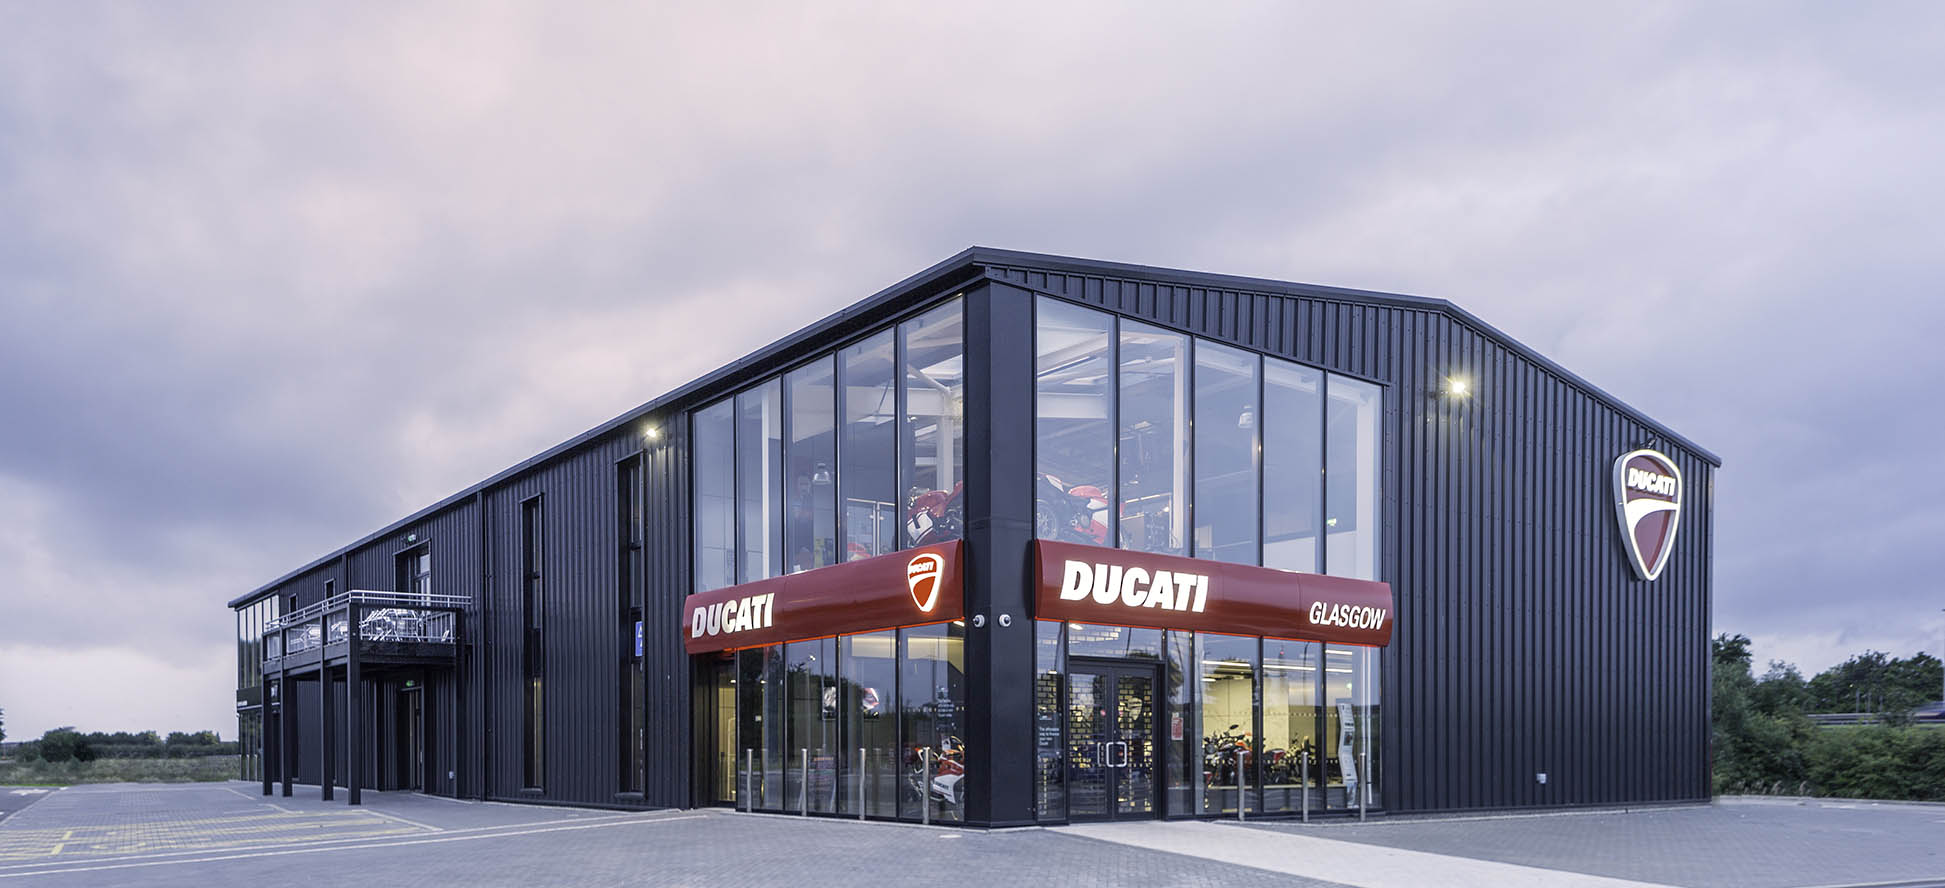 Ducati Dealer Hillington Park, by commercial photographer in Glasgow James Thompson